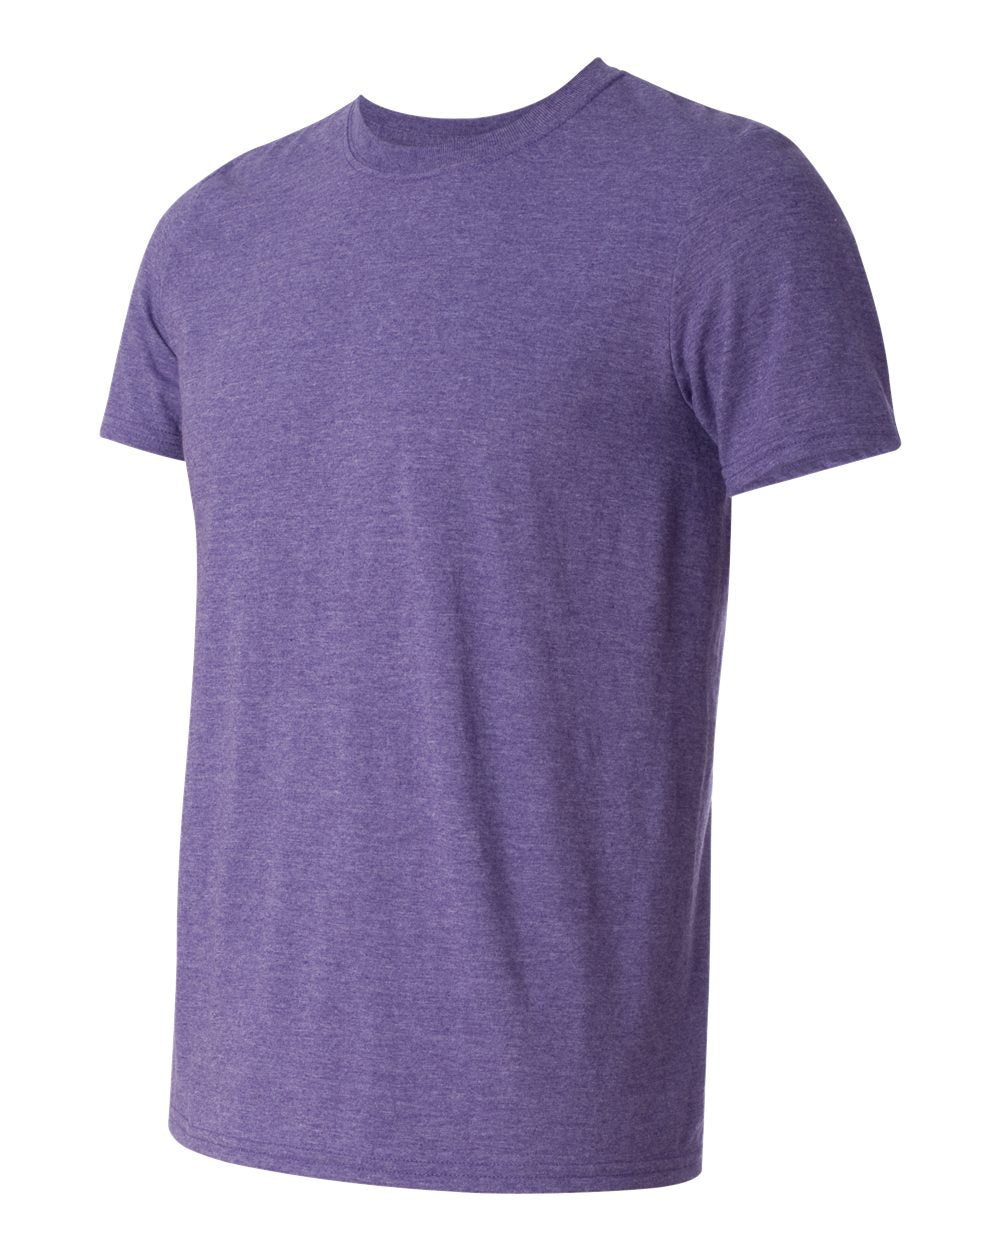 Gildan SoftSytle Cotton 64000 Heather Purple